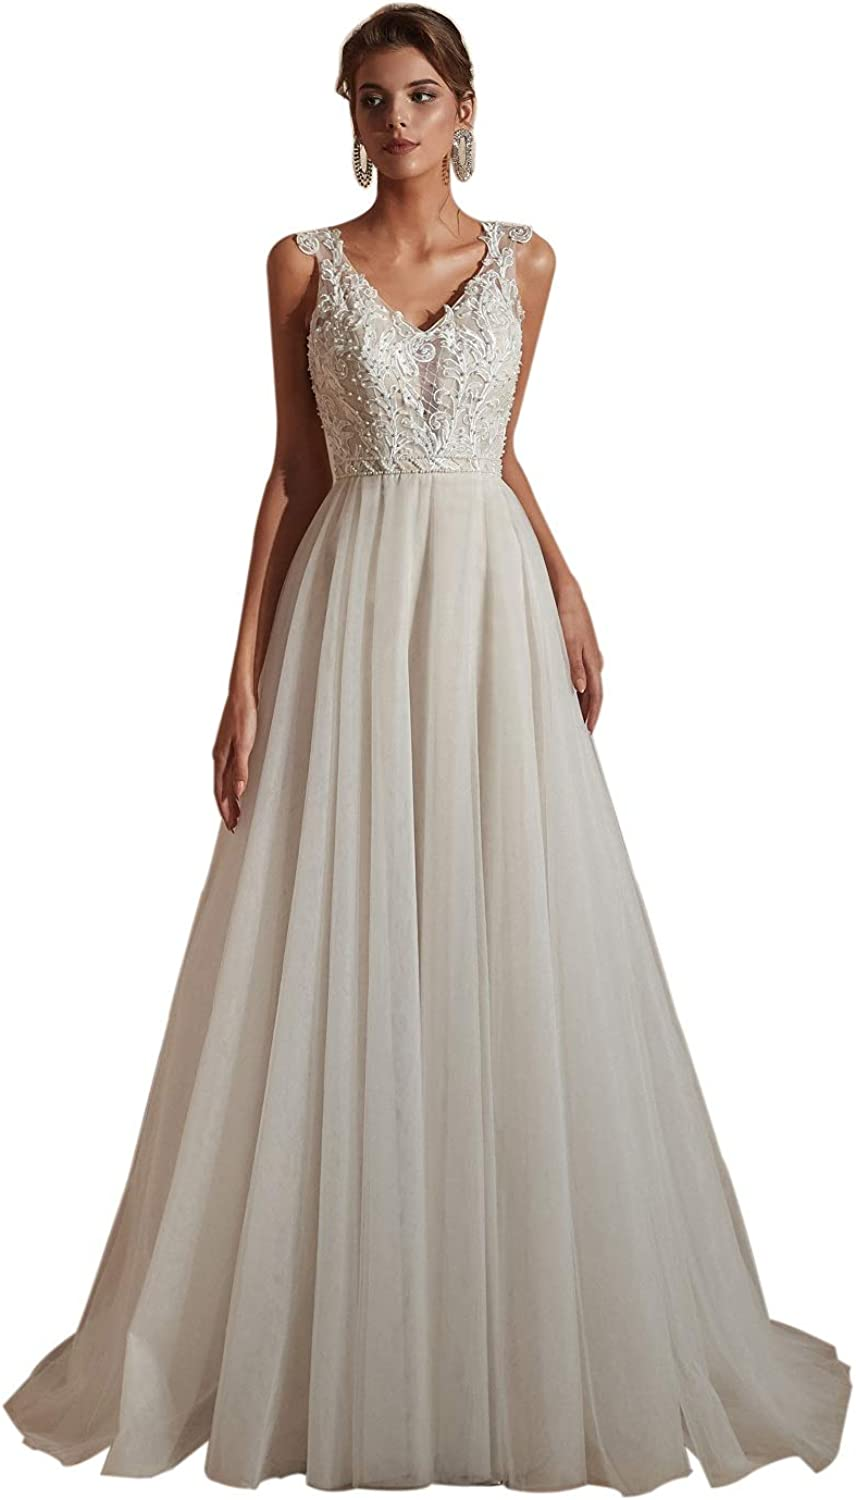 Leyidress Beach Wedding Dresses Lace A line V Neck Bridal Gowns Ivory Long Tulle Dress for Beach Weddings